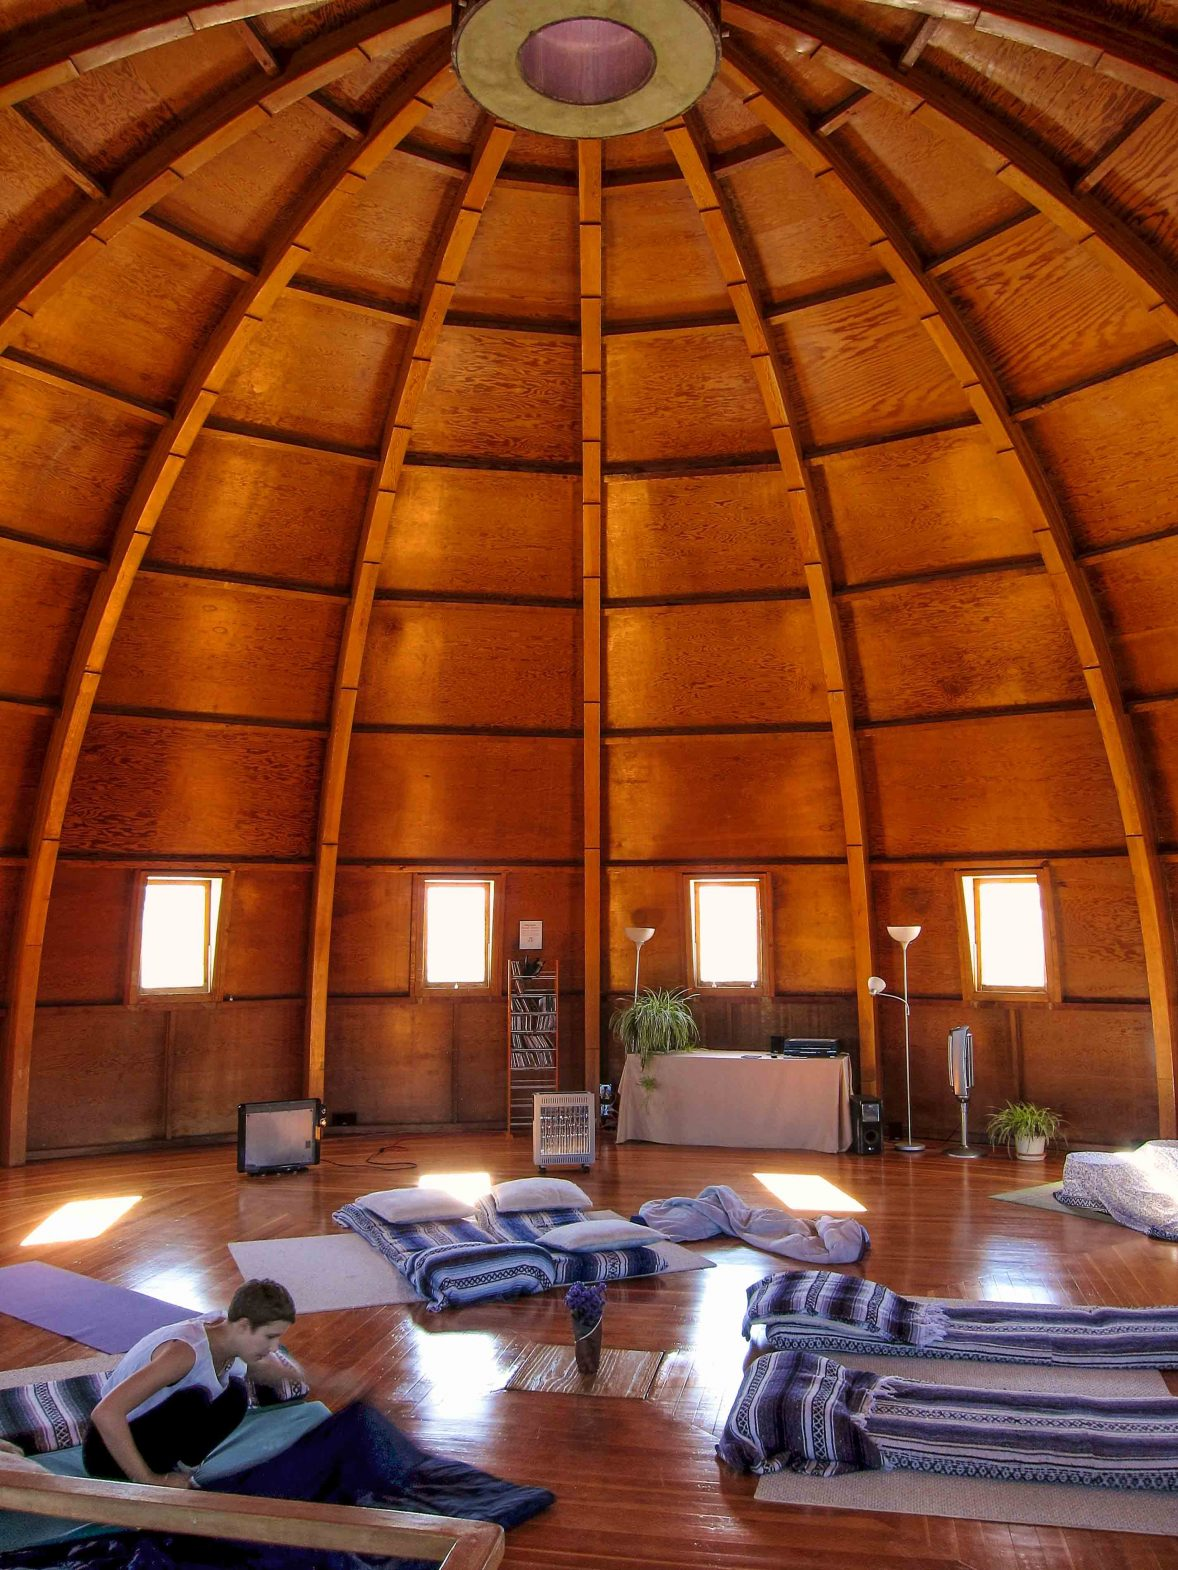 Beds are prepared for the sound bath at the Integratron.